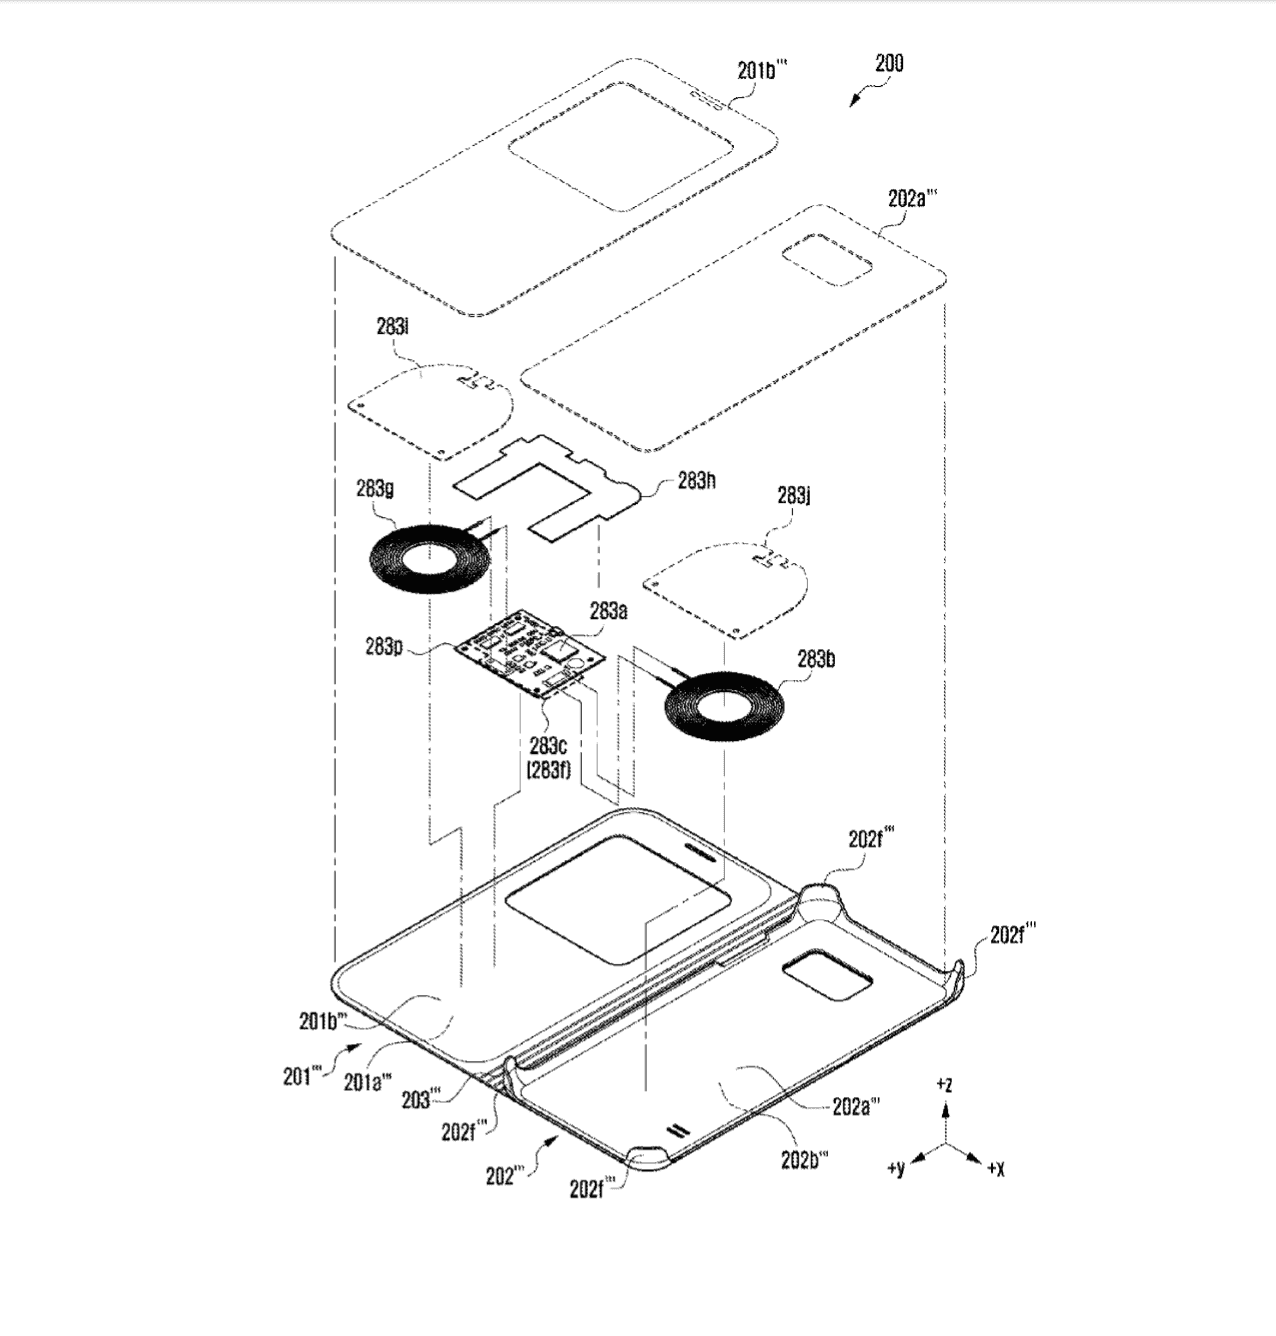 Samsung Wireless Charging Case Patents 4